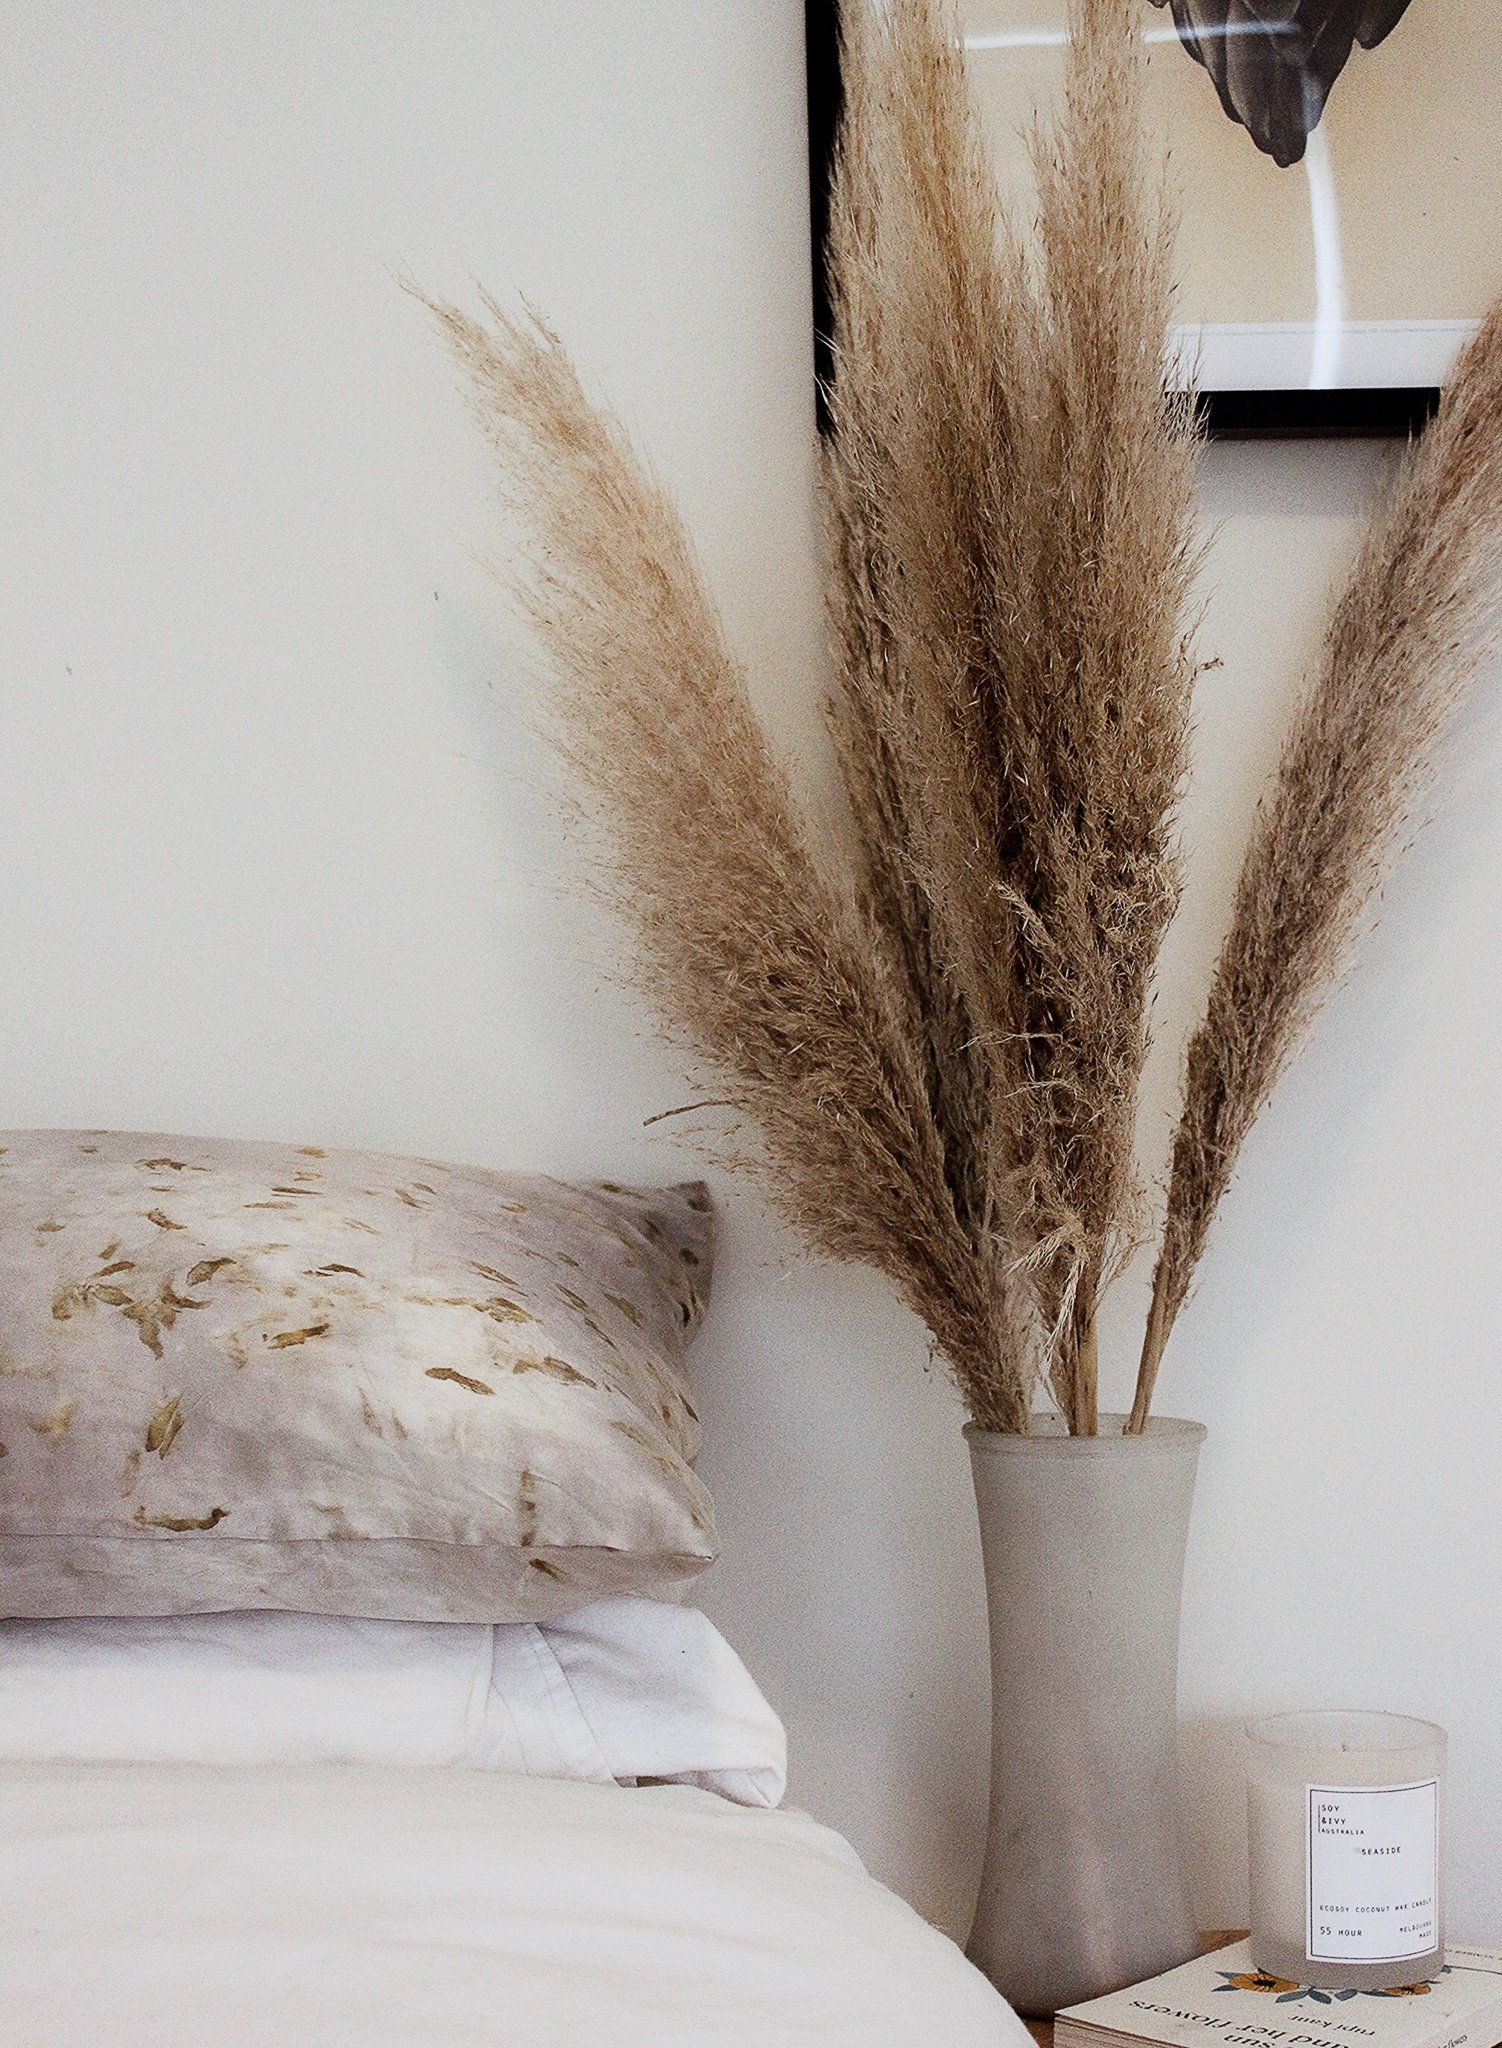 Natural Hand-Dyed Homewares from Tinta - Zero Waste Wedding Gift Ideas on The Good Trade